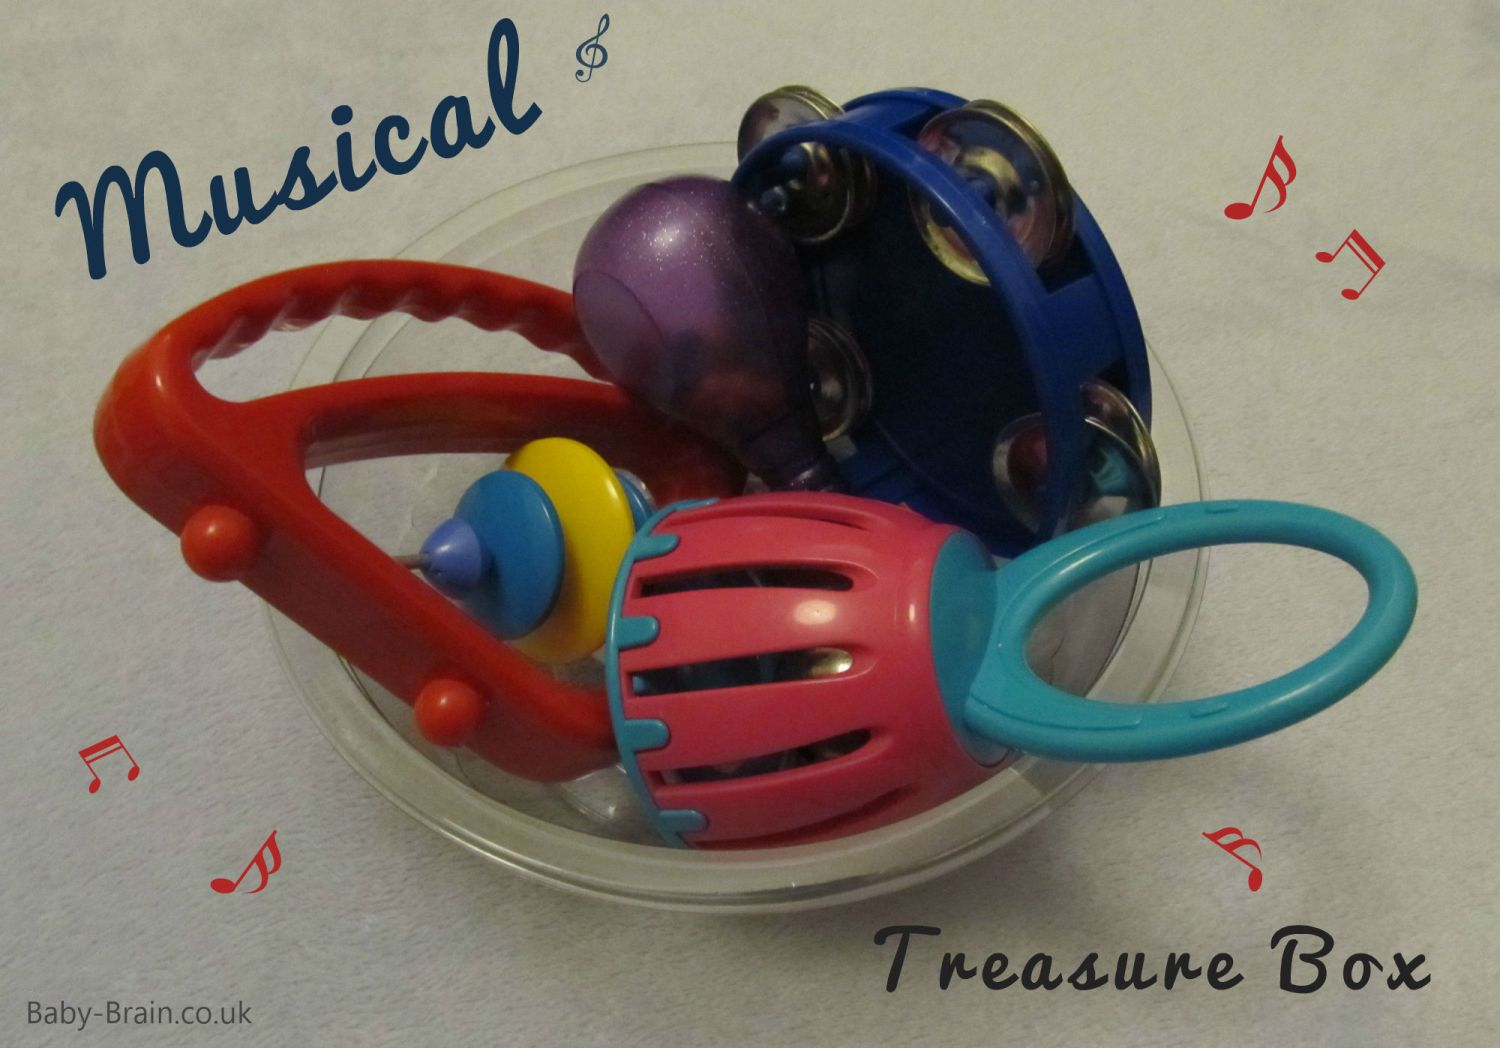 treasure baskets & heuristic play: how, why, what. Music box.  baby-brain.co.uk